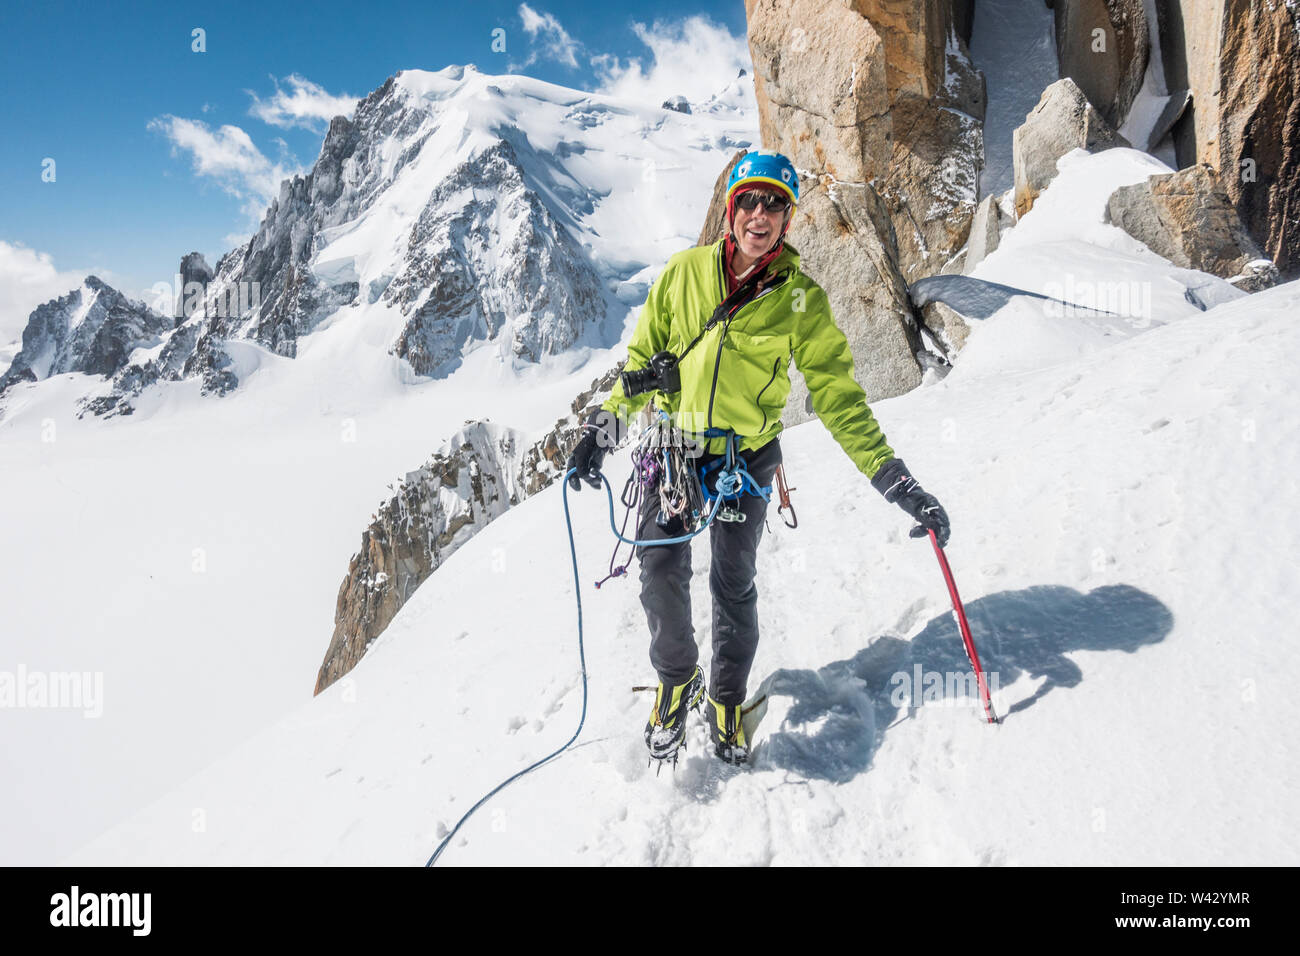 A climber smiles while enjoying great conditions in the French Alps Stock Photo